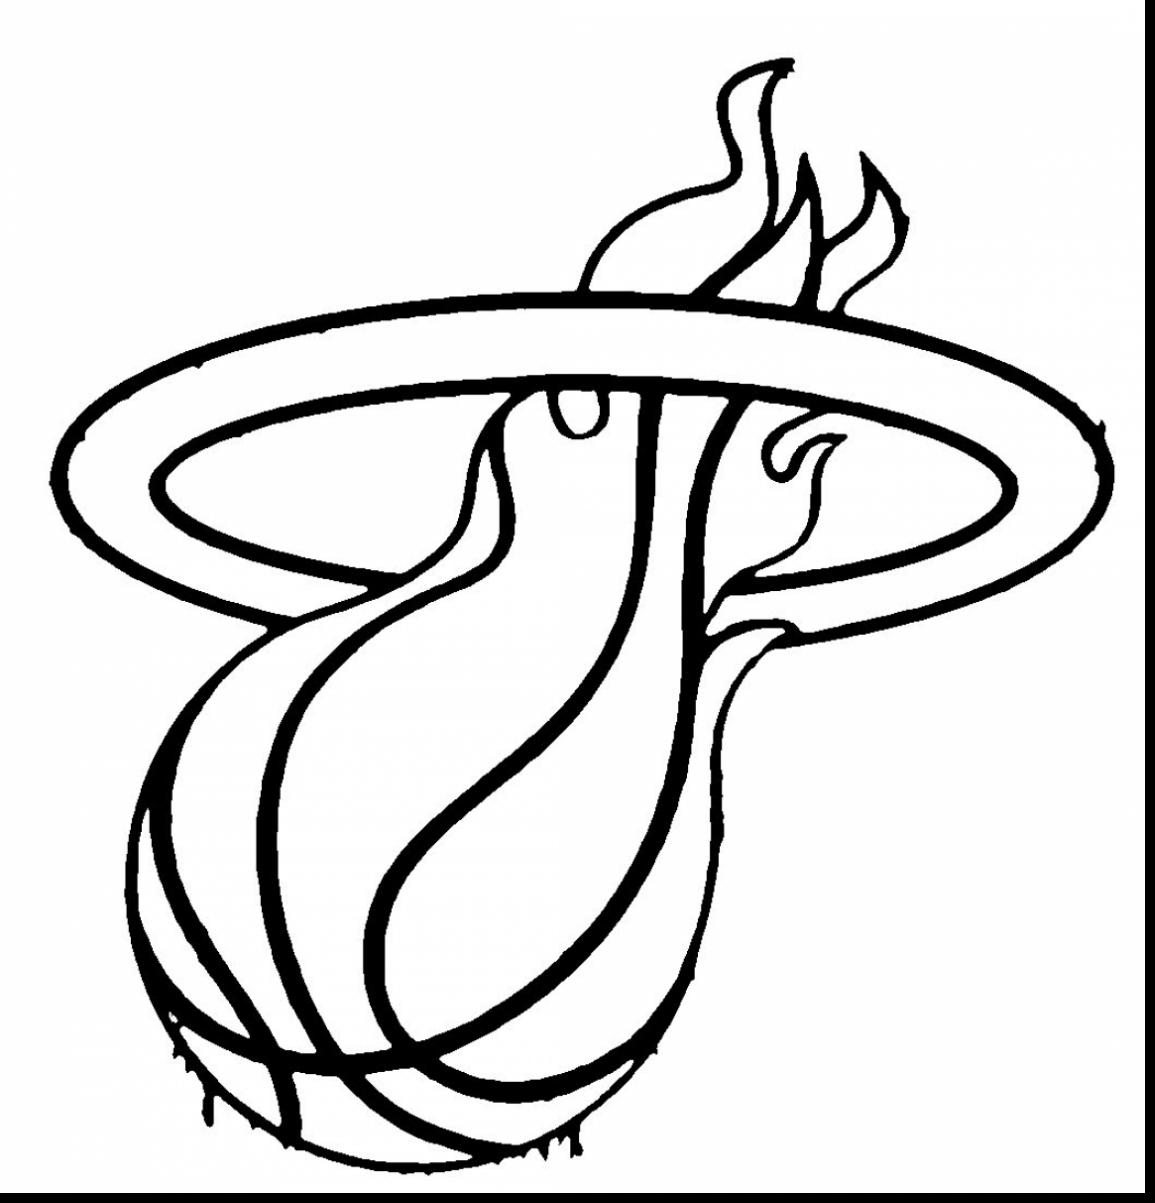 Nba logo drawing at free for personal for Miami heat coloring pages